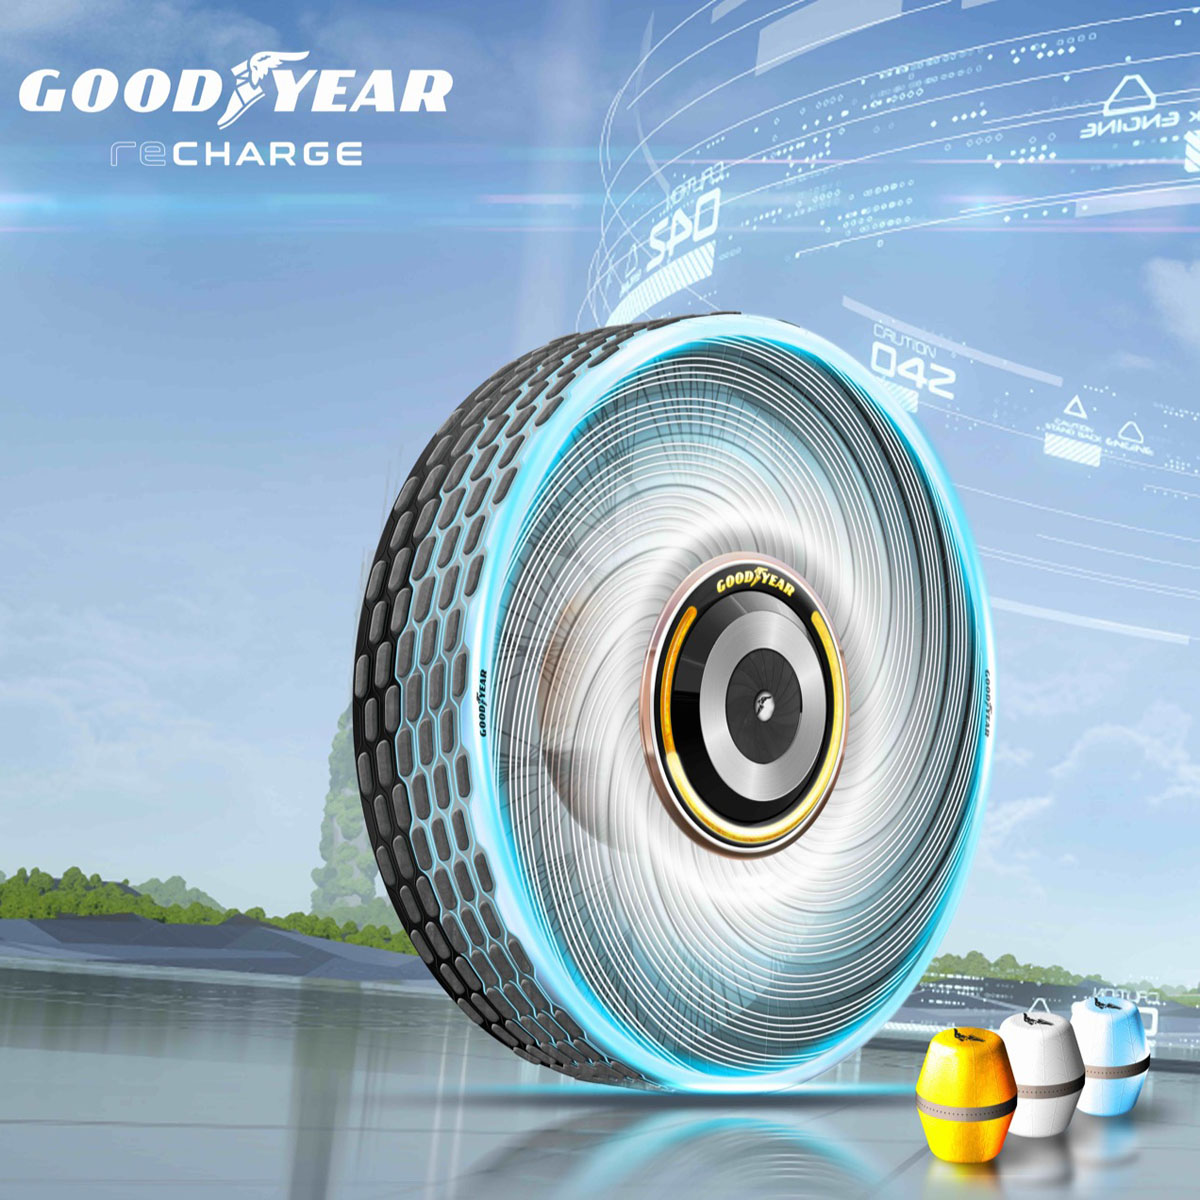 Goodyear_Recharge_Three_Quarter_Background